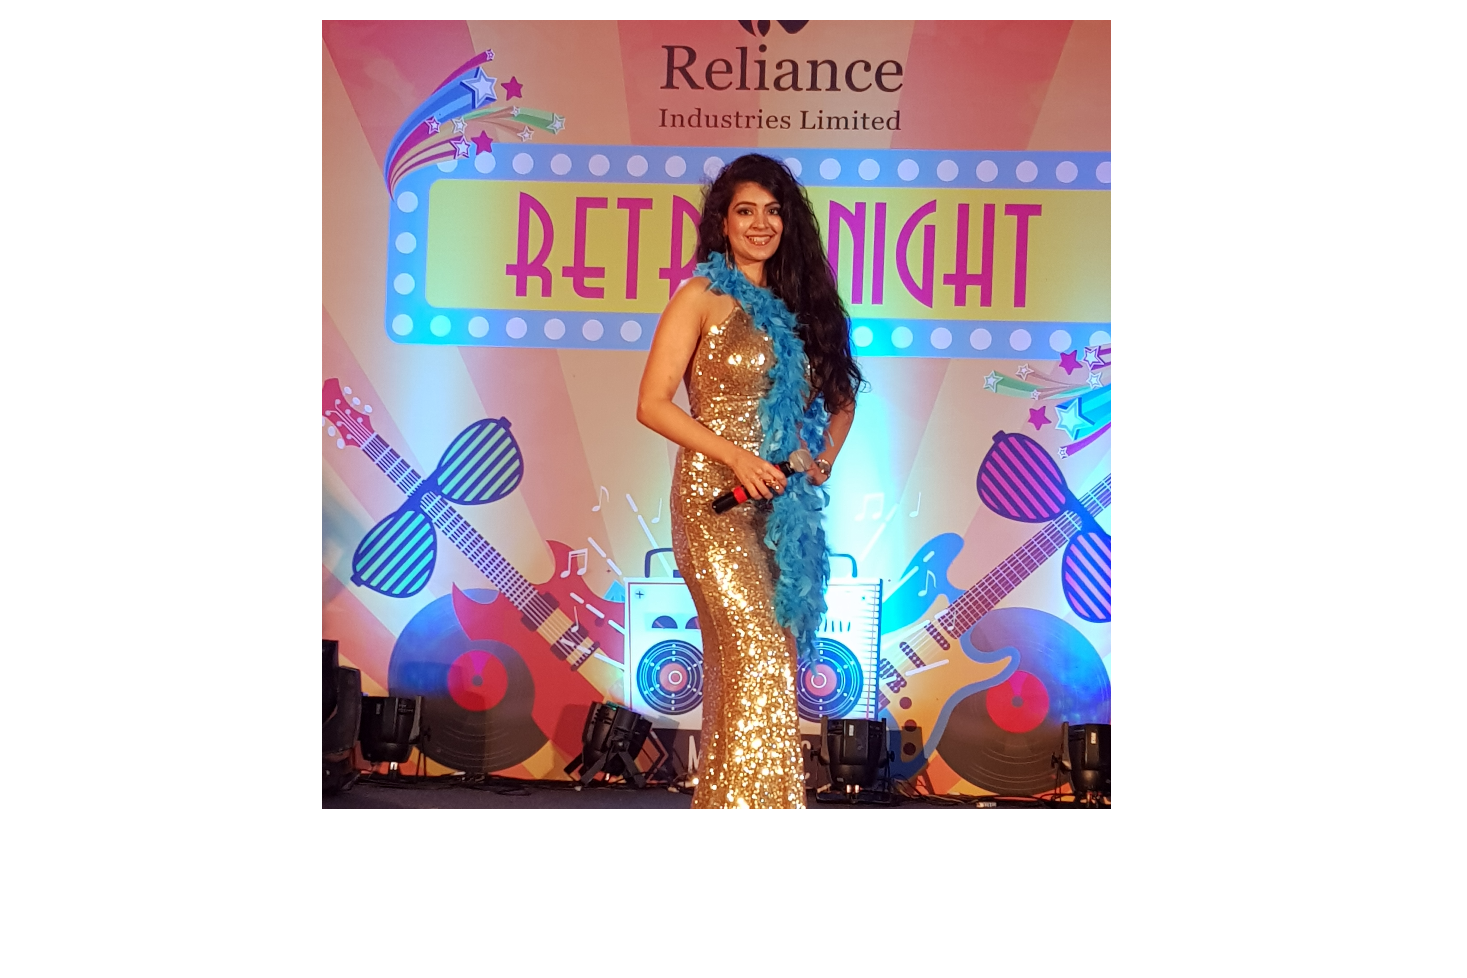 Anchored the Reliance Retro theme night at Alibaug